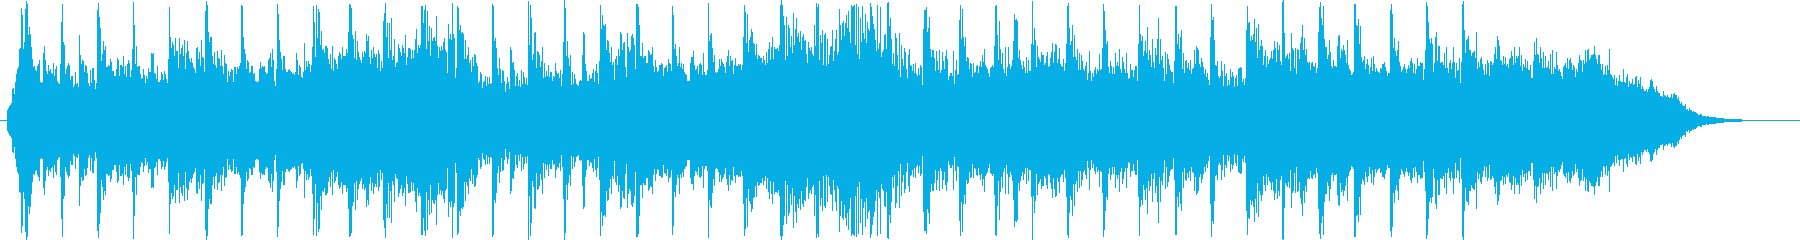 Short sounds such as dramatic guitars's reproduced waveform